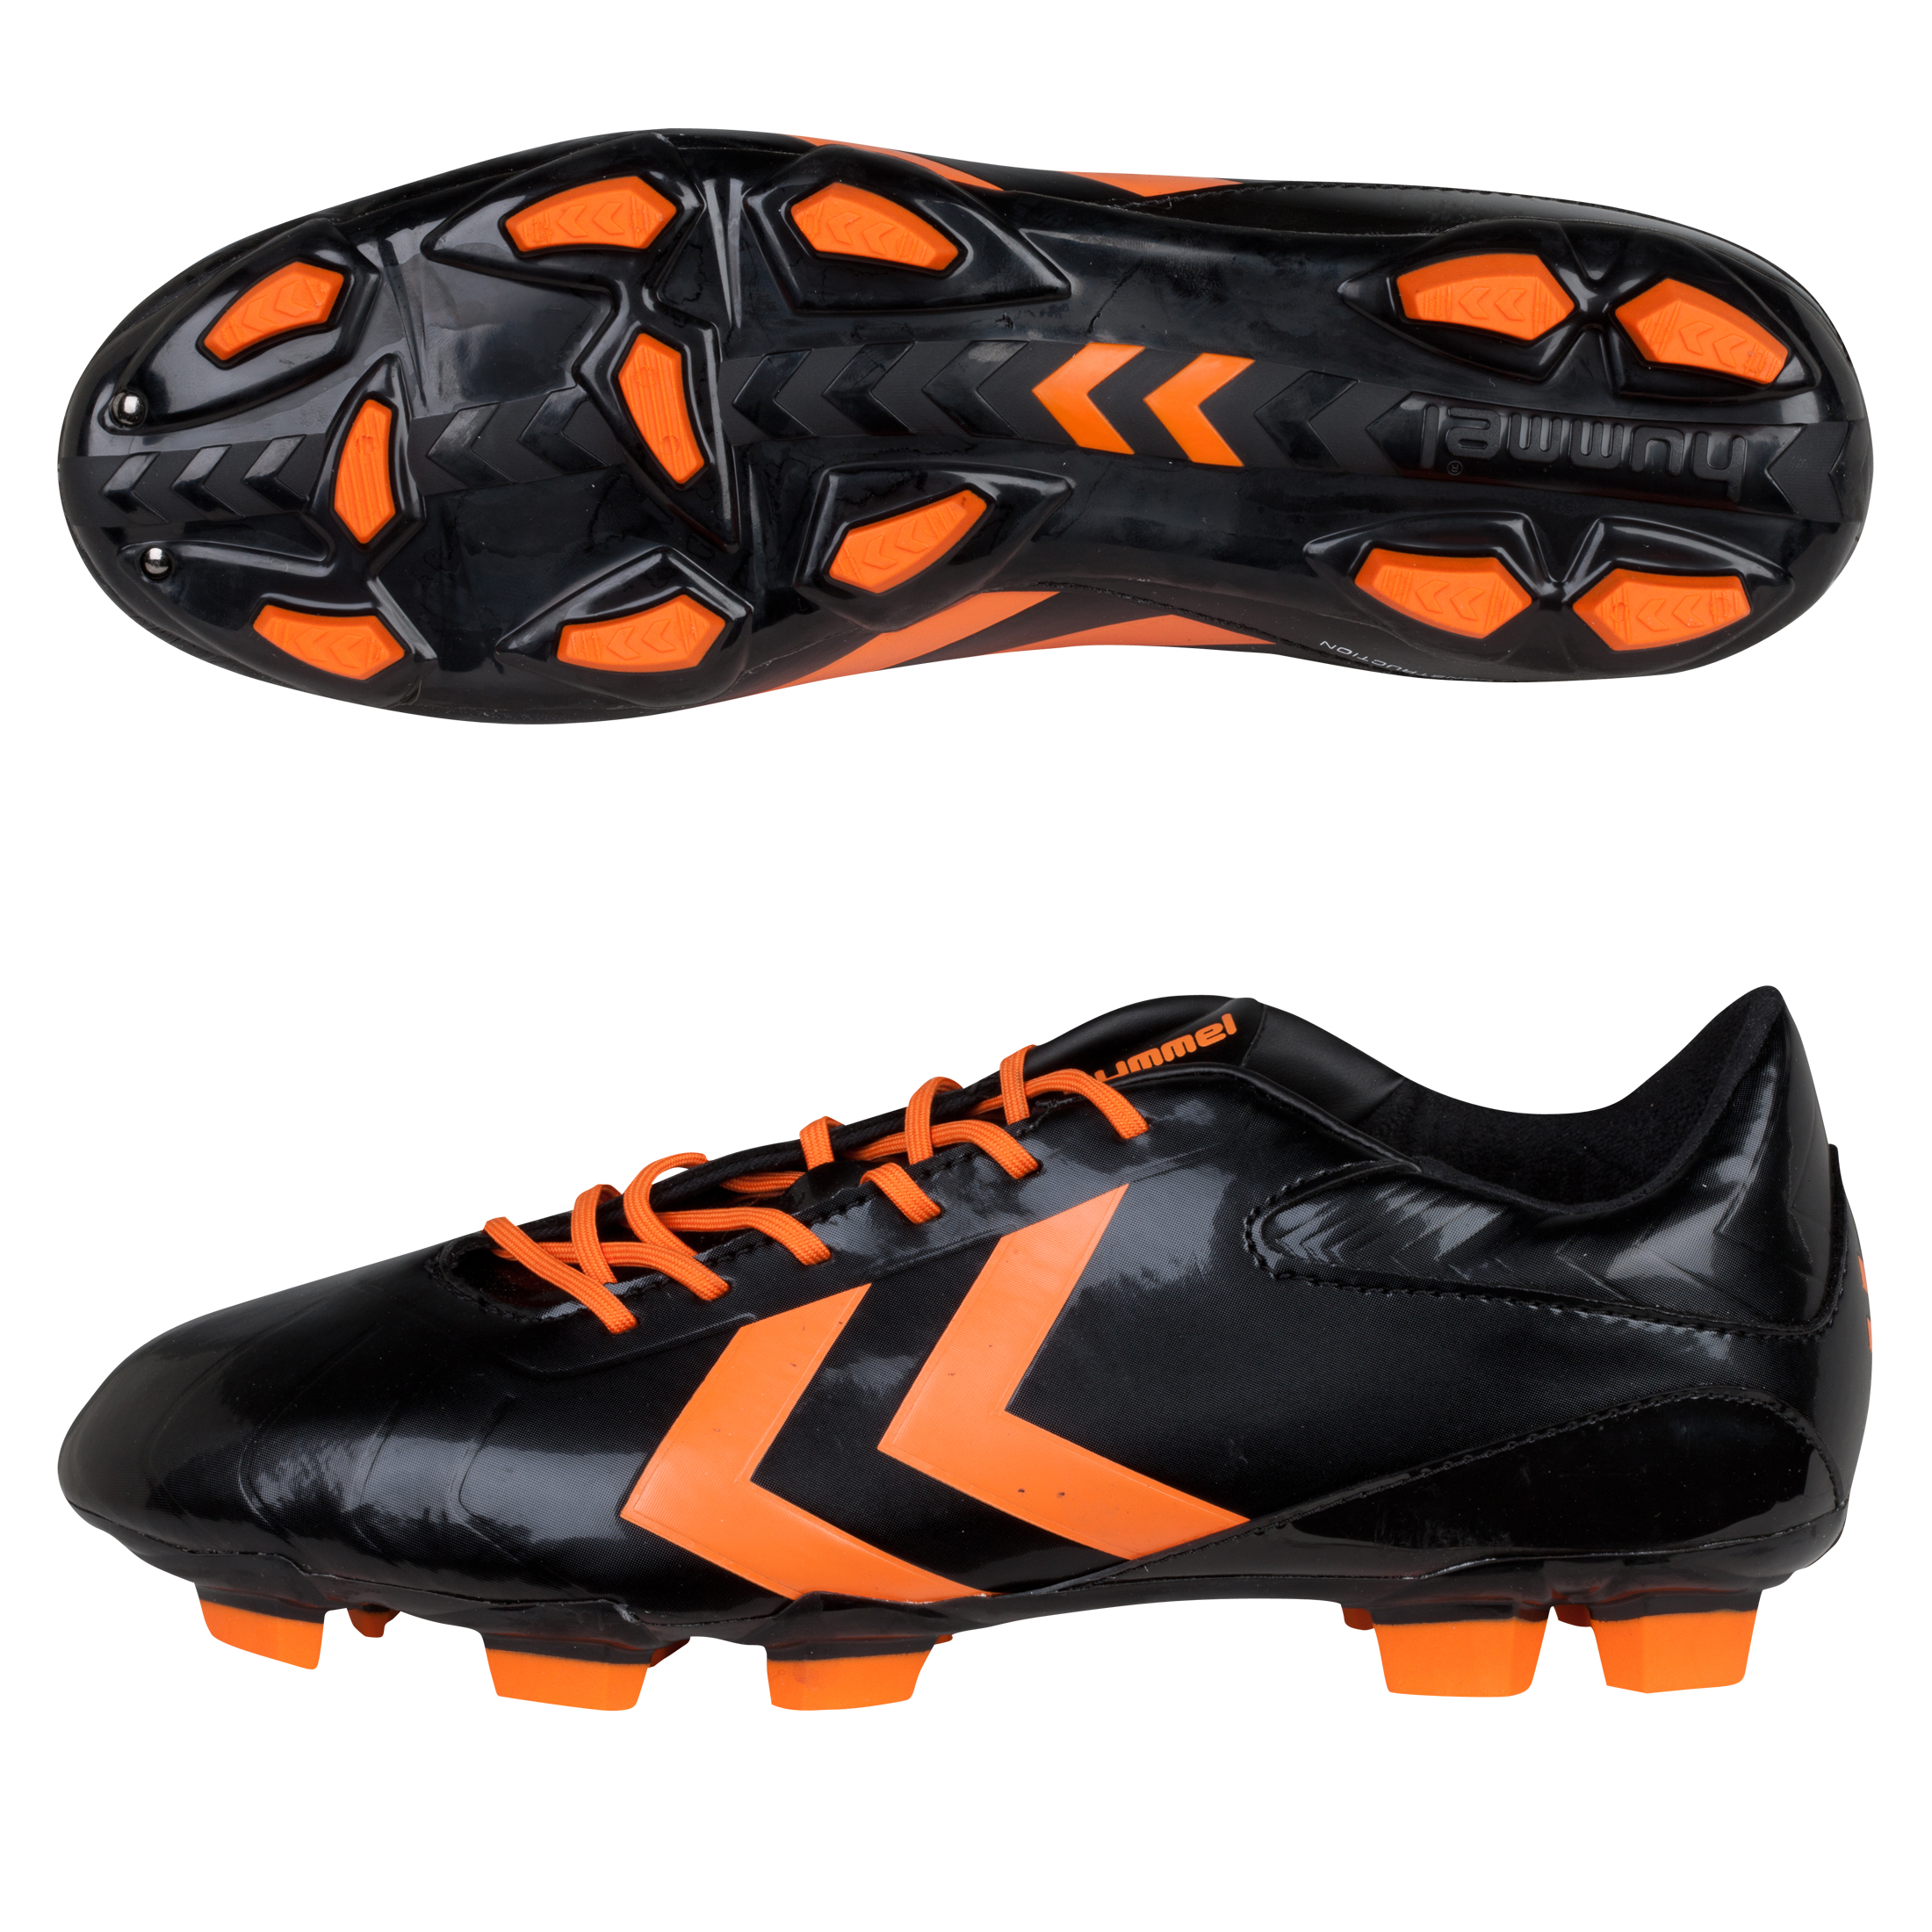 Hummel Rapid Firm Ground Football Boots - Black/Golden Poppy